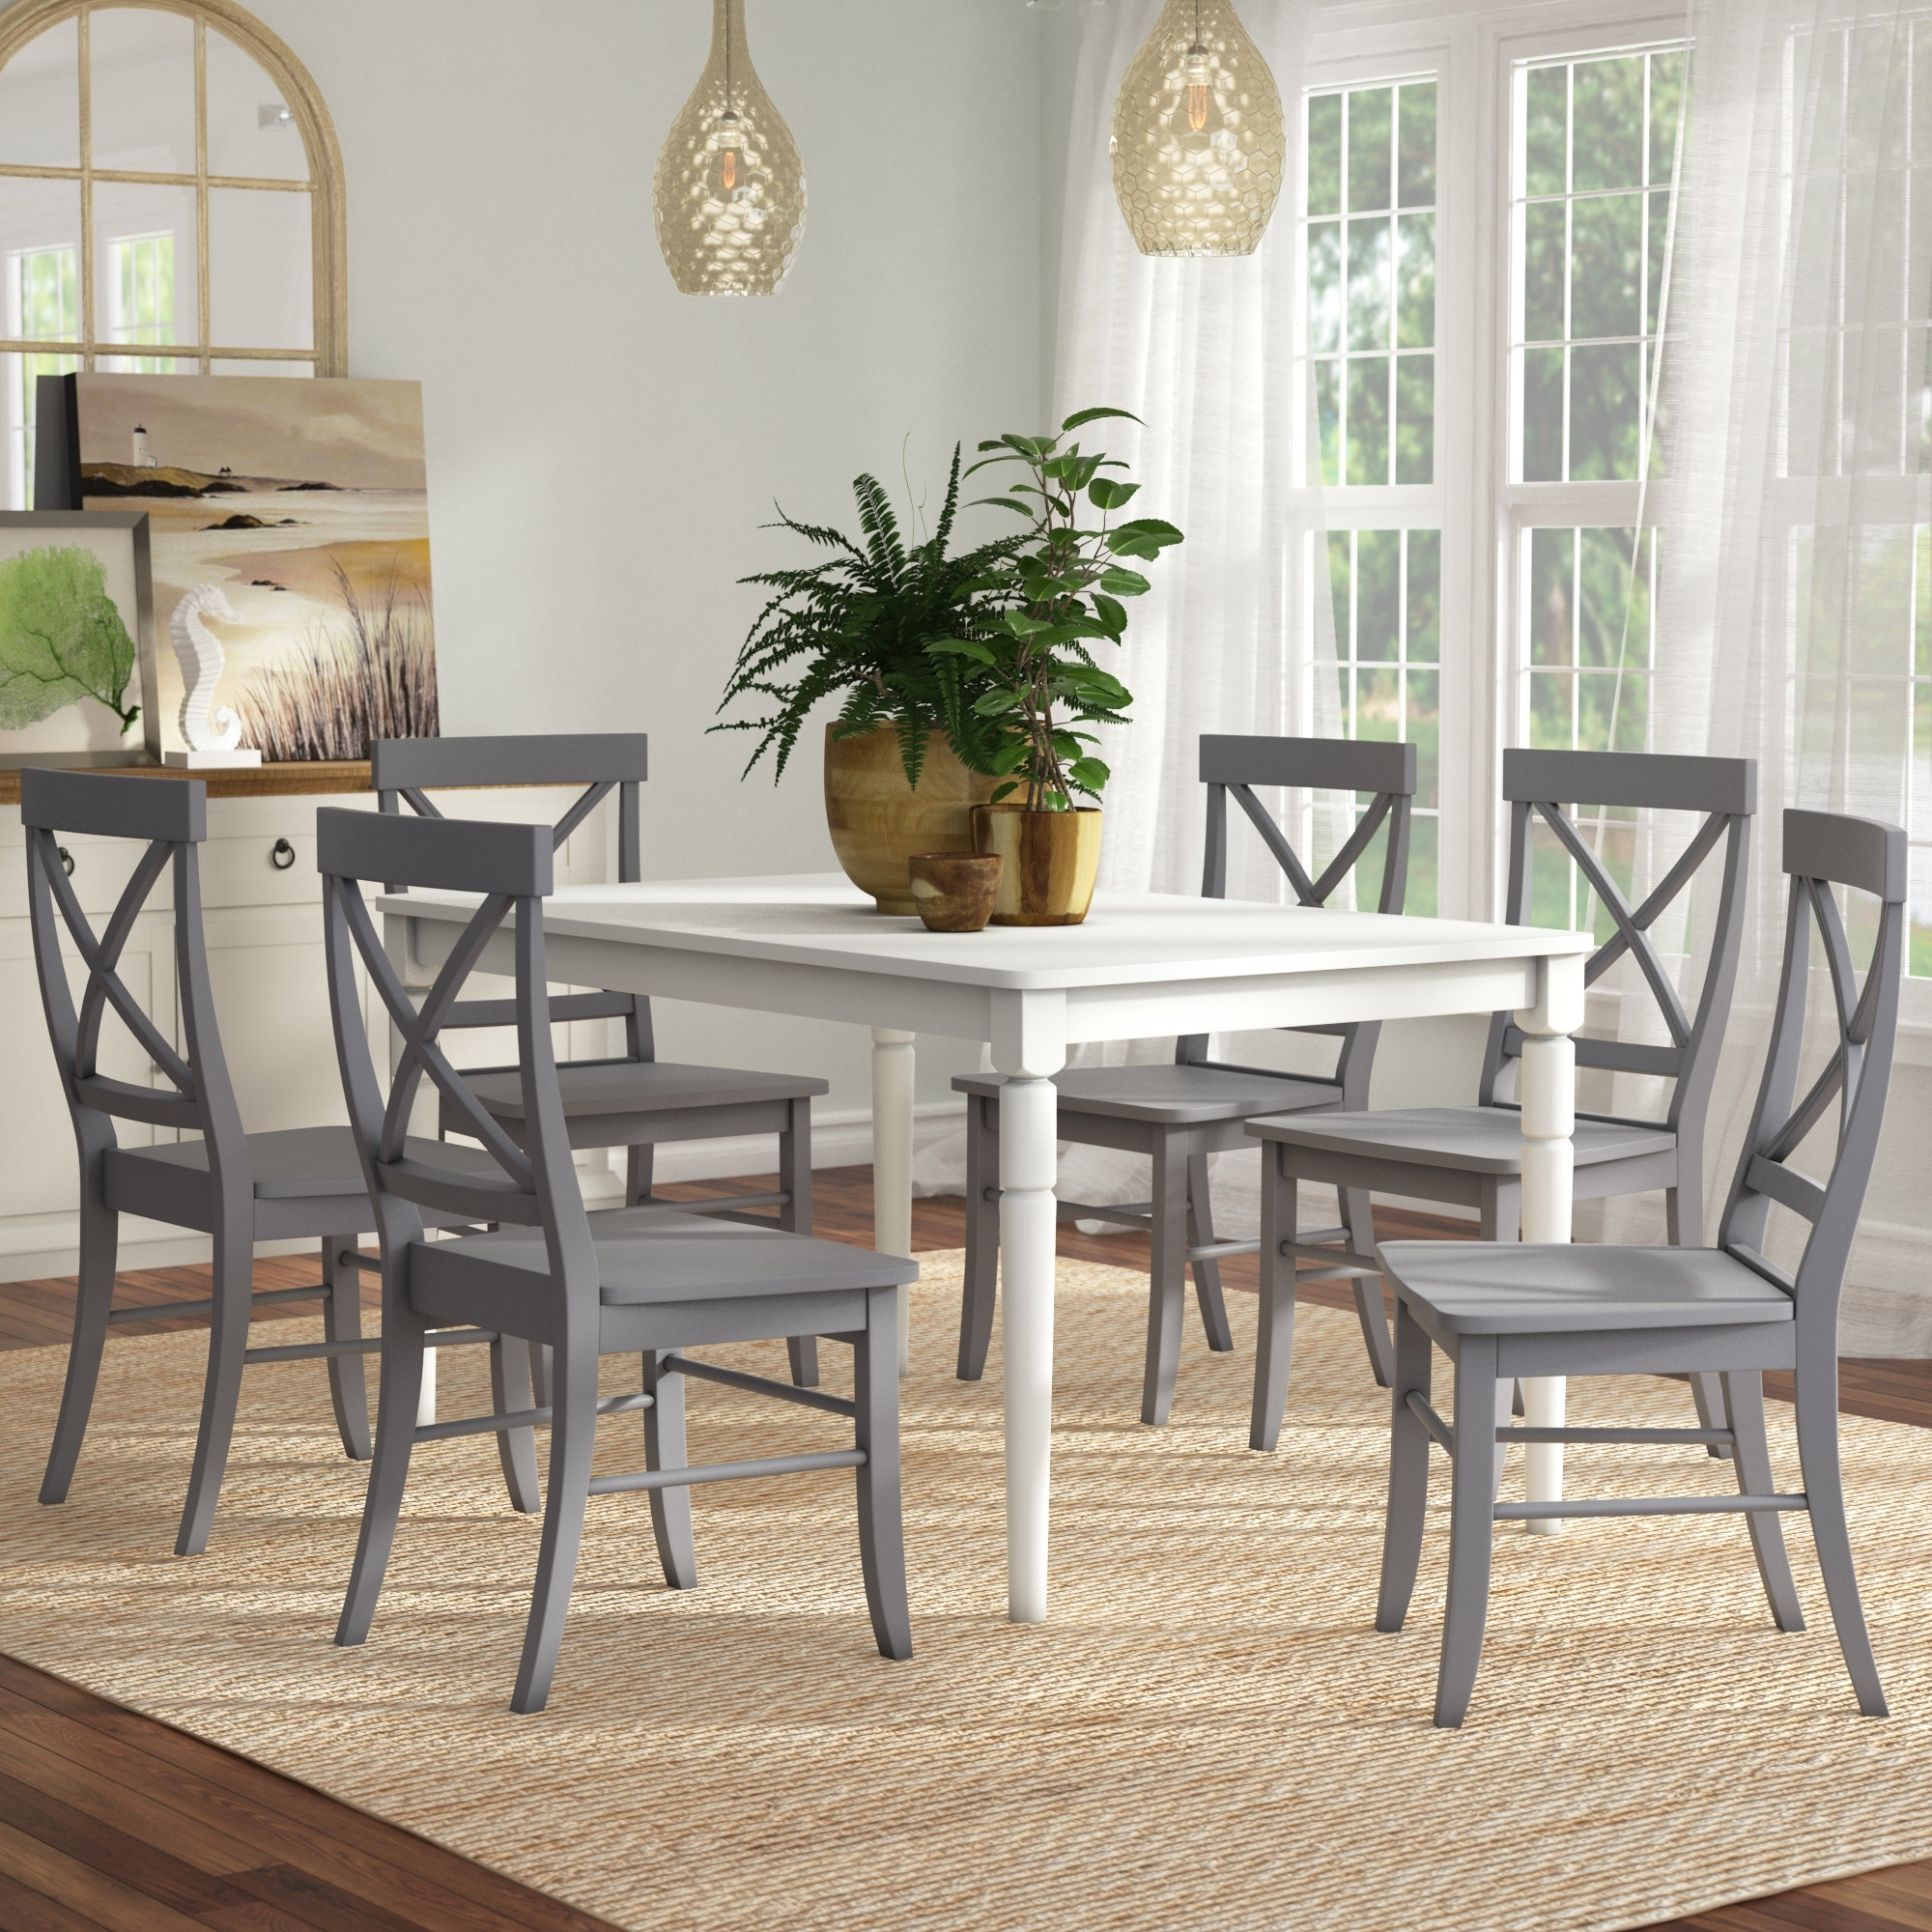 Beachcrest Home Brookwood 7 Piece Dining Set & Reviews | Wayfair With Recent Laurent 7 Piece Rectangle Dining Sets With Wood Chairs (View 5 of 20)